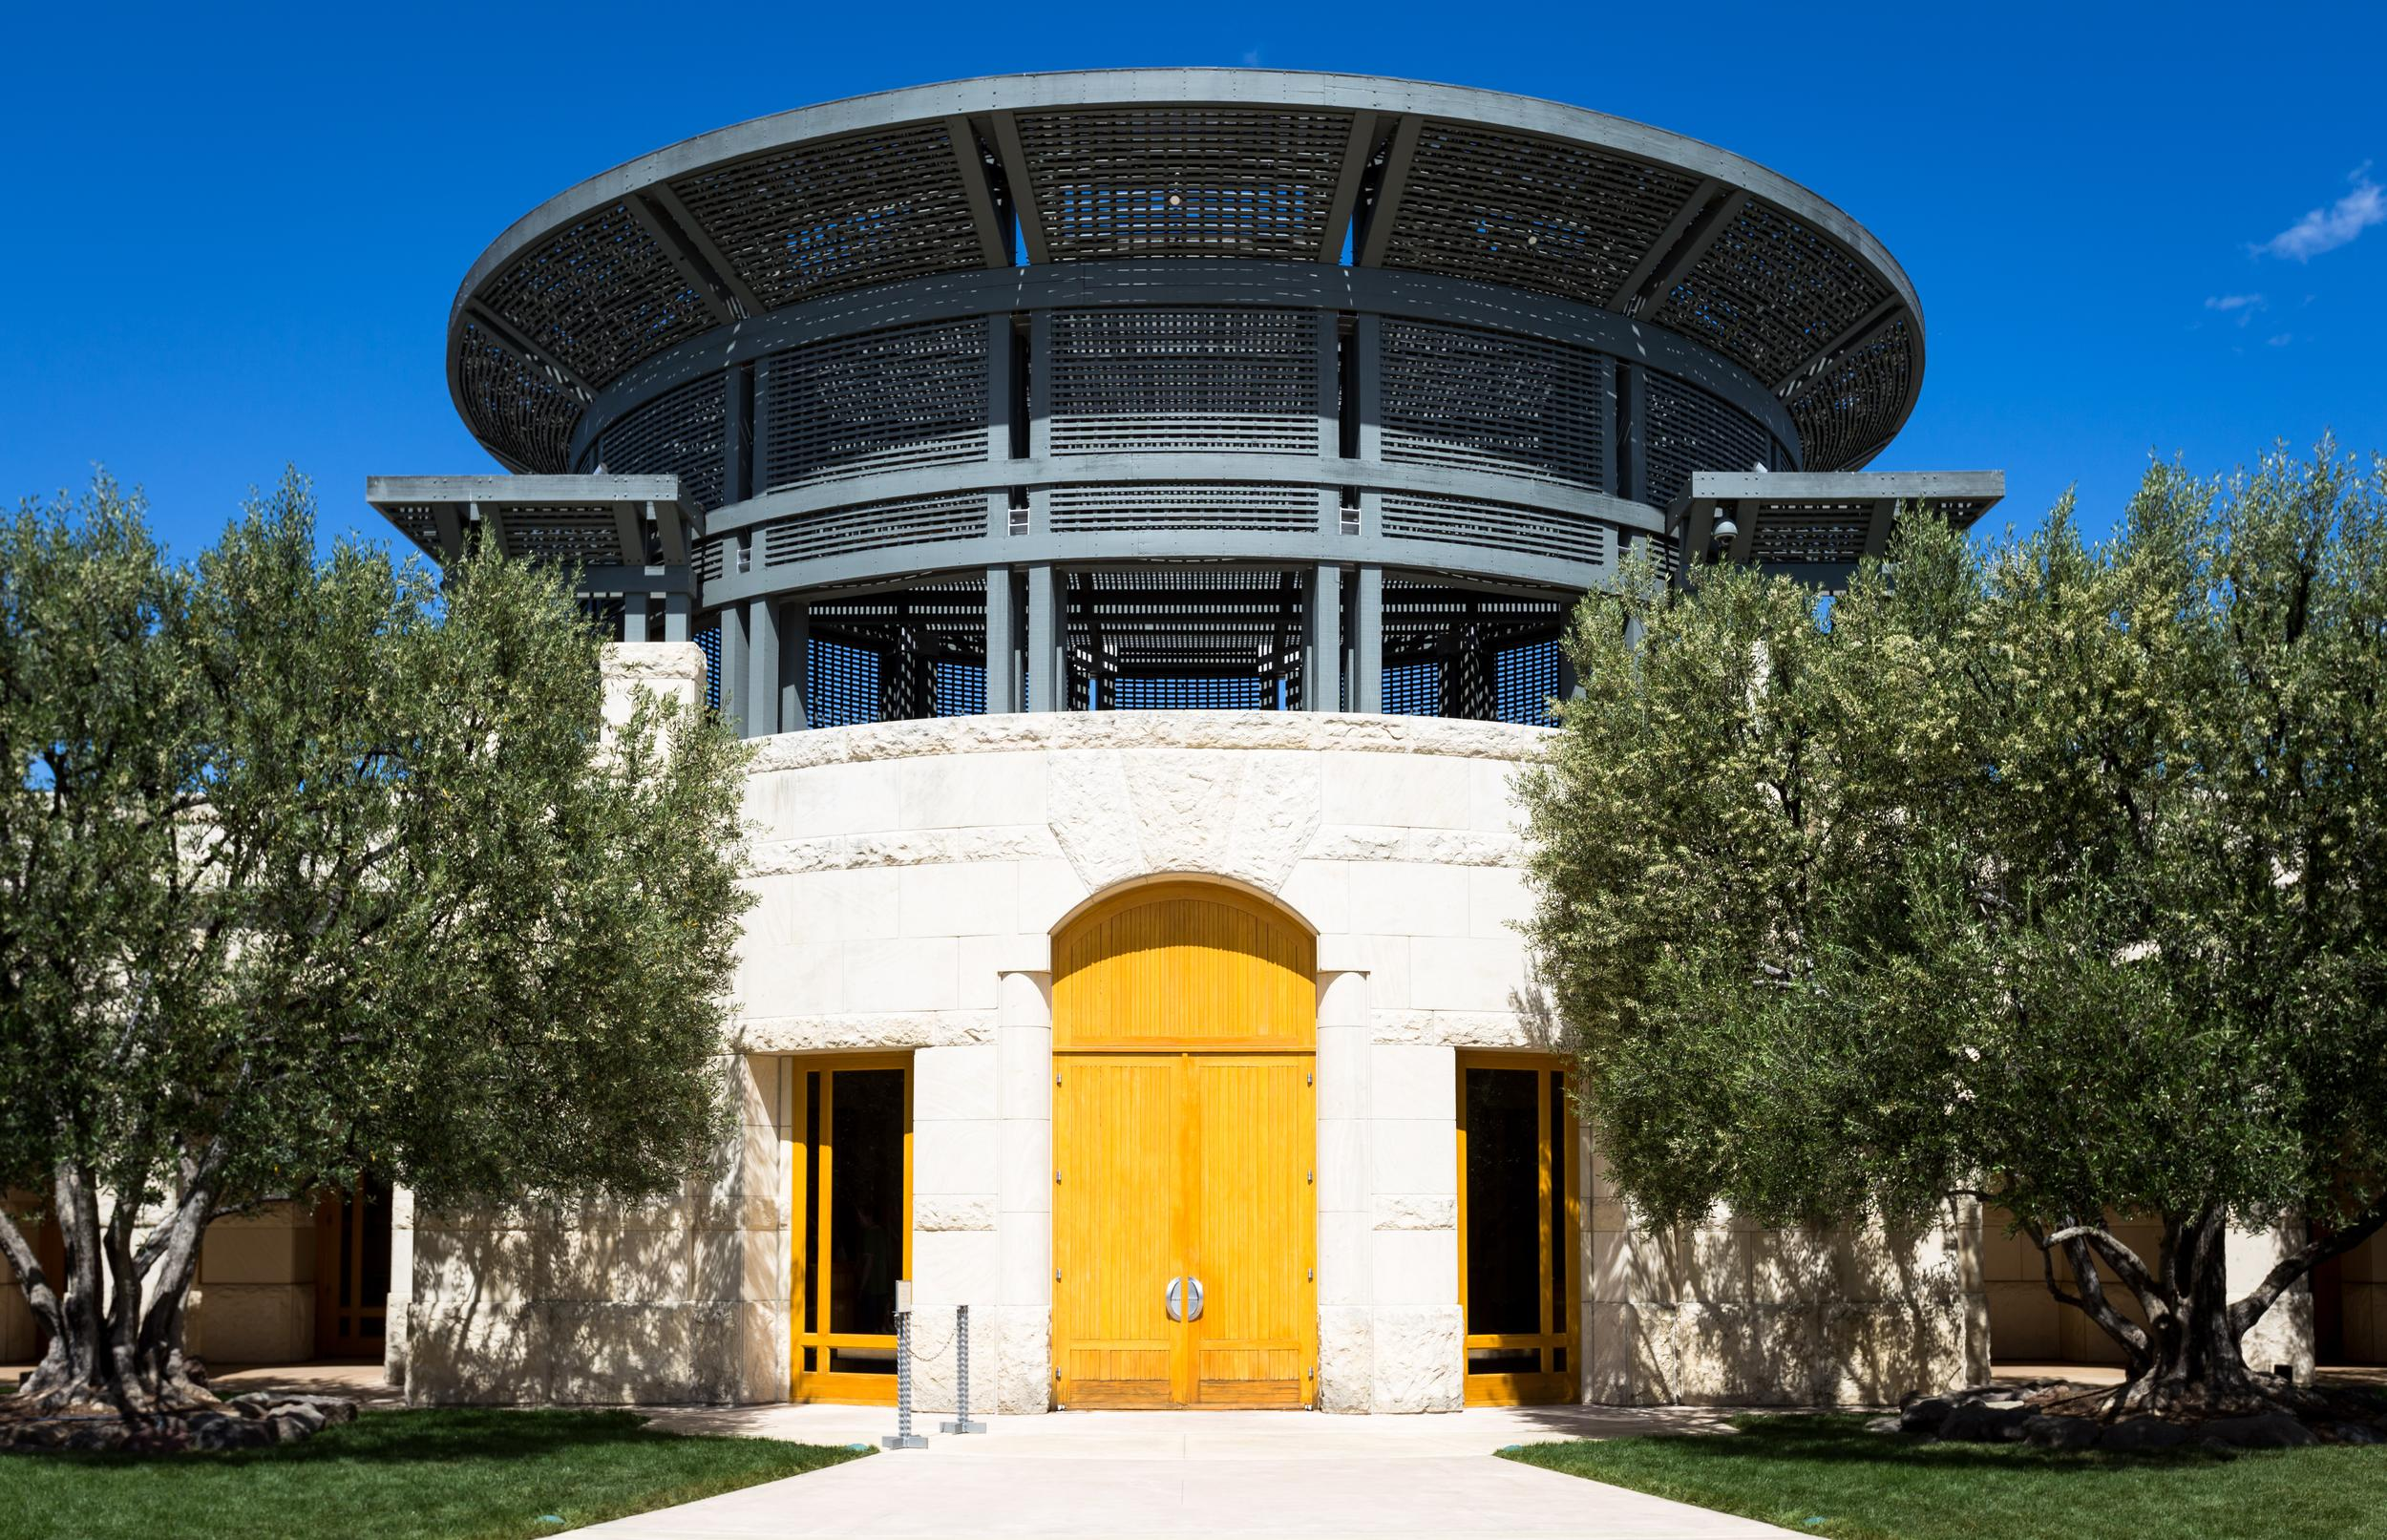 Entrance to Opus One Winery